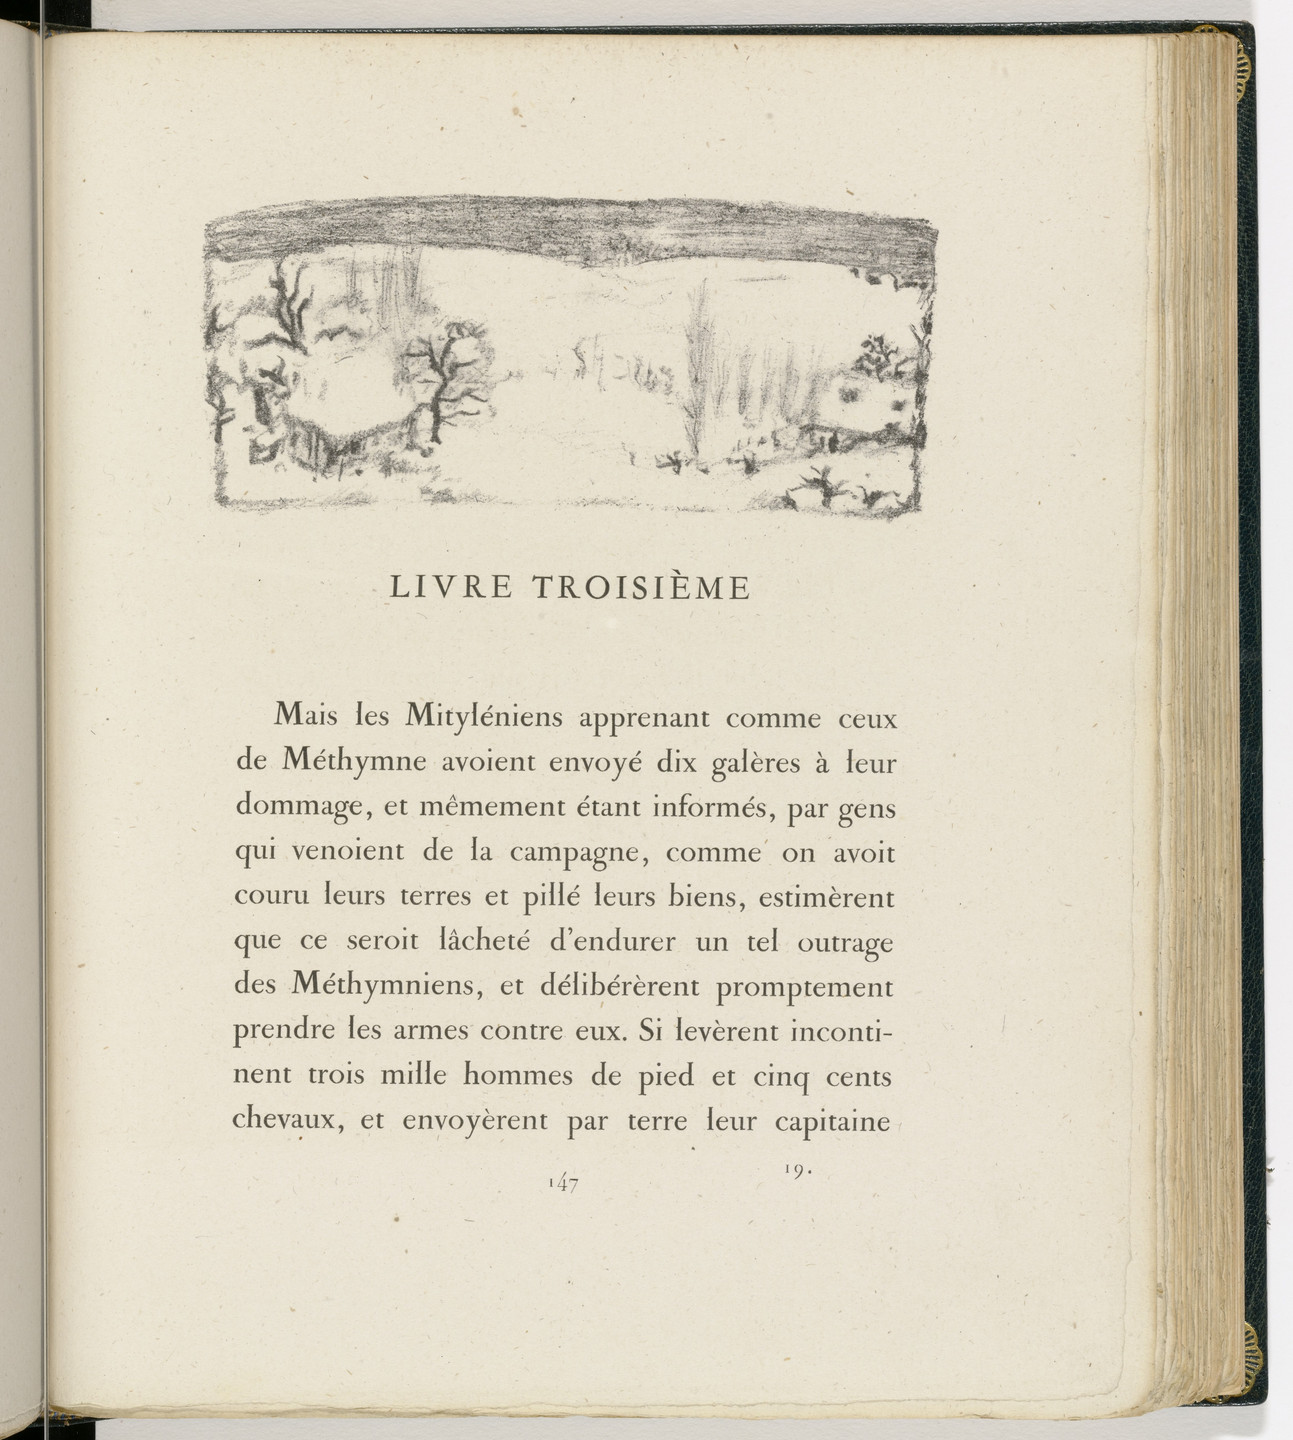 Pierre Bonnard. Headpiece (page 147) from Daphnis et Chloé. 1902